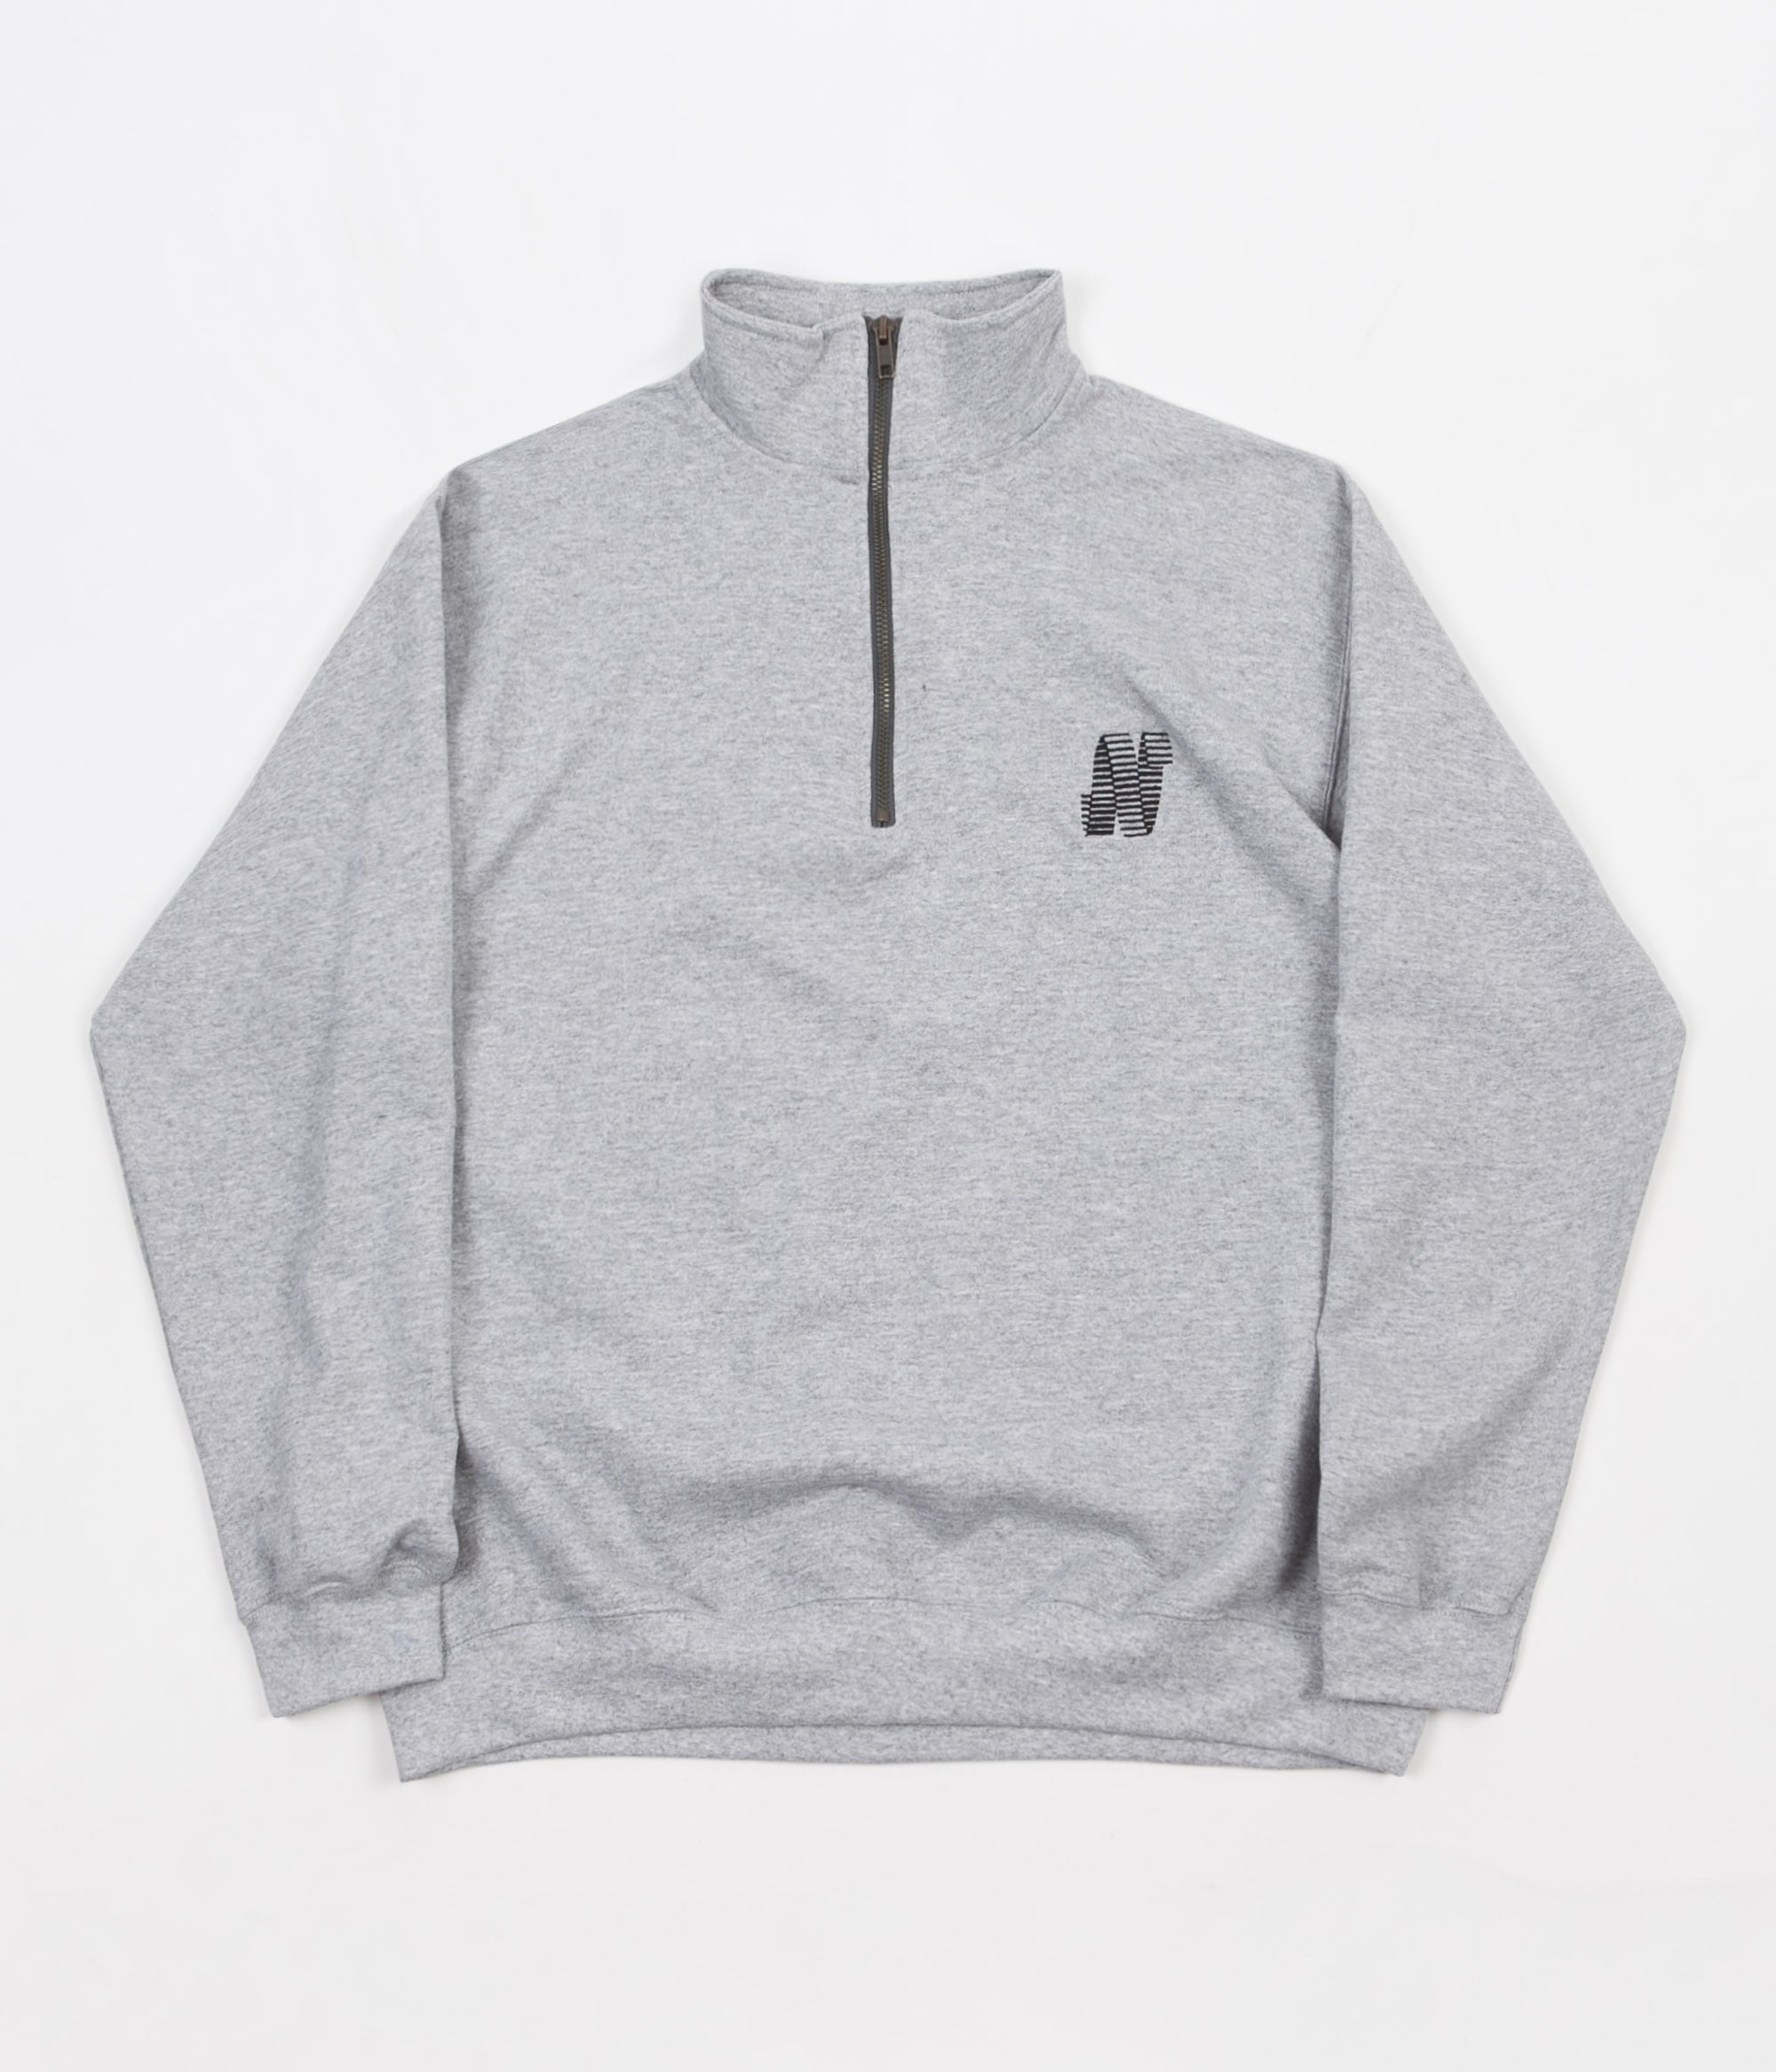 North Skateboard Magazine N Logo Embroidered 1/4 Zip Sweatshirt - Grey / Black